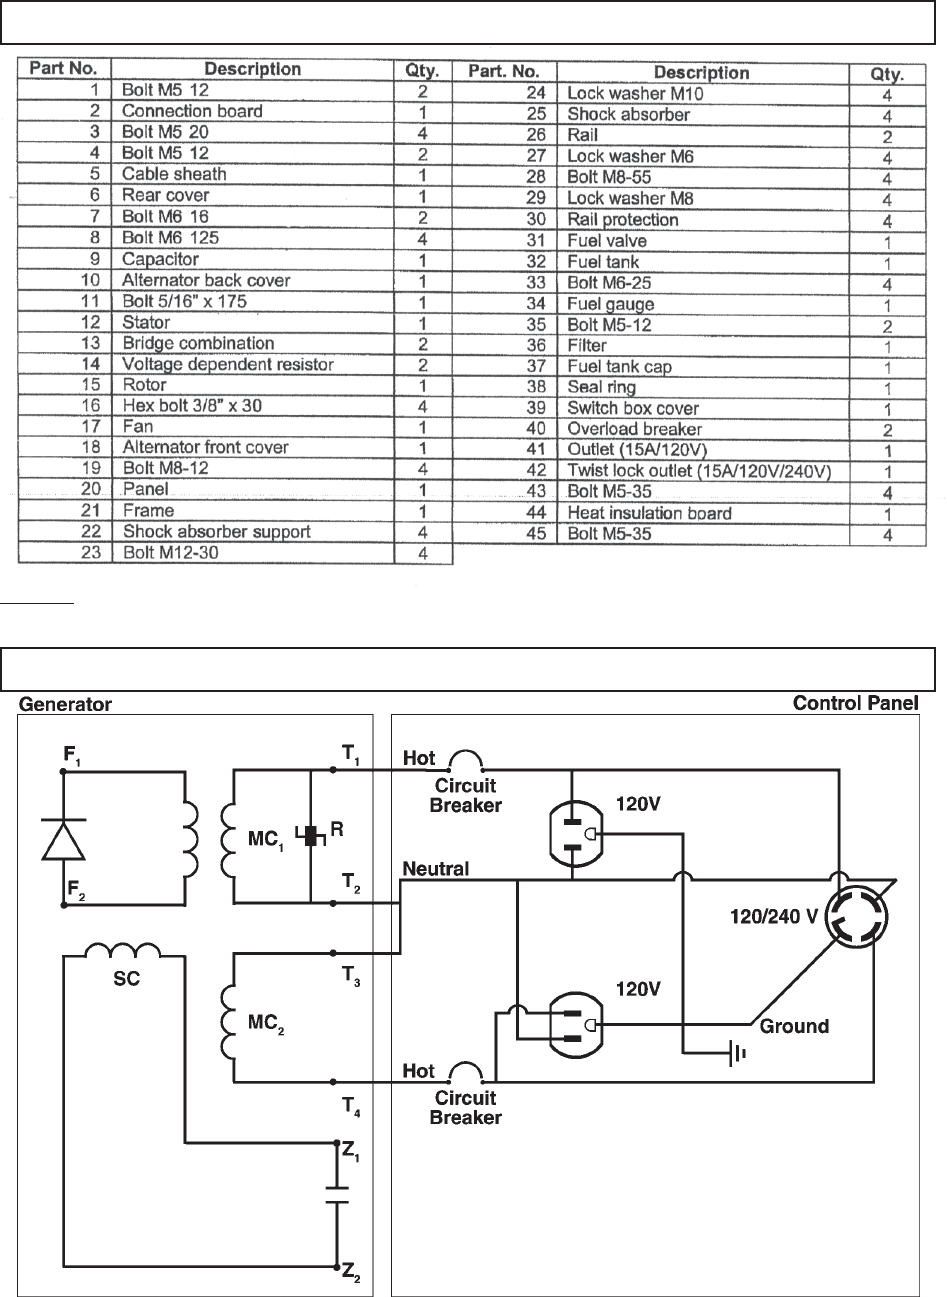 a85f0c07 842a 44f4 8489 a0177bc6f502 bg11 champion generator wiring diagram ac generator wiring diagram Hobart Oven Wiring Diagram at gsmx.co